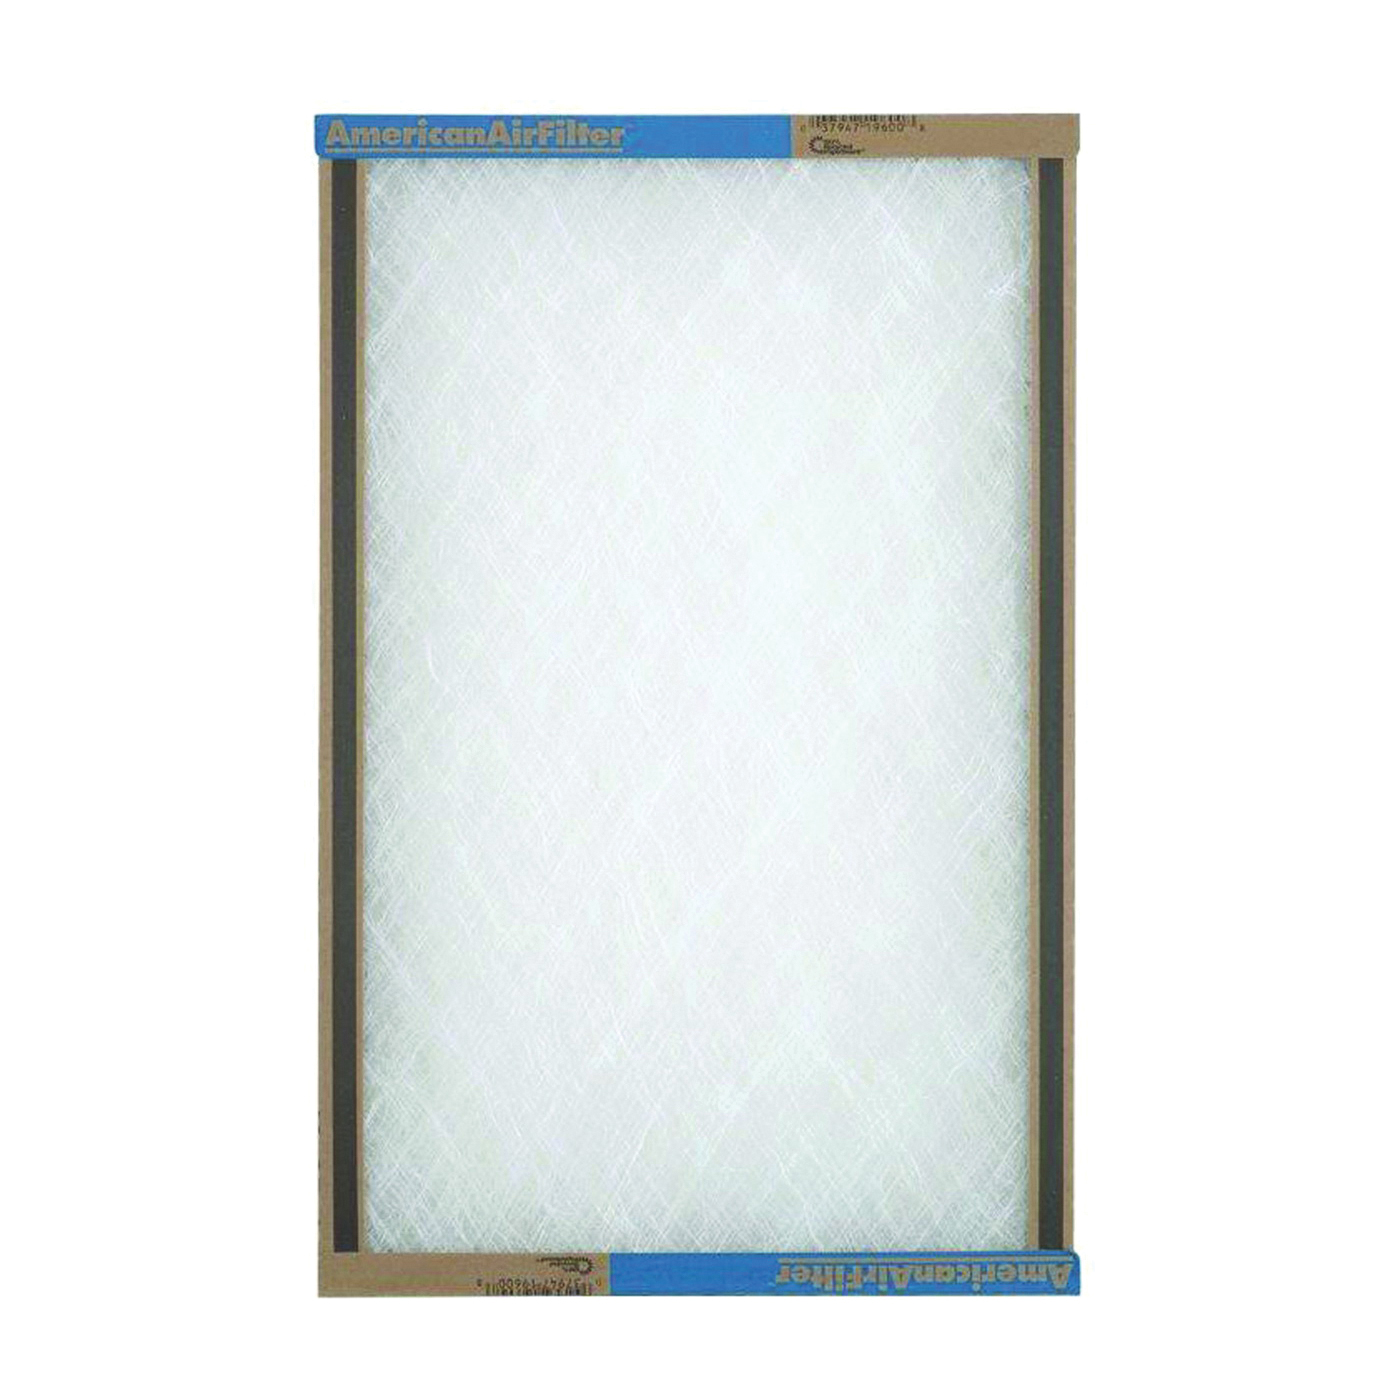 Picture of AAF 112121 Panel Filter, 12 in L, 12 in W, Chipboard Frame